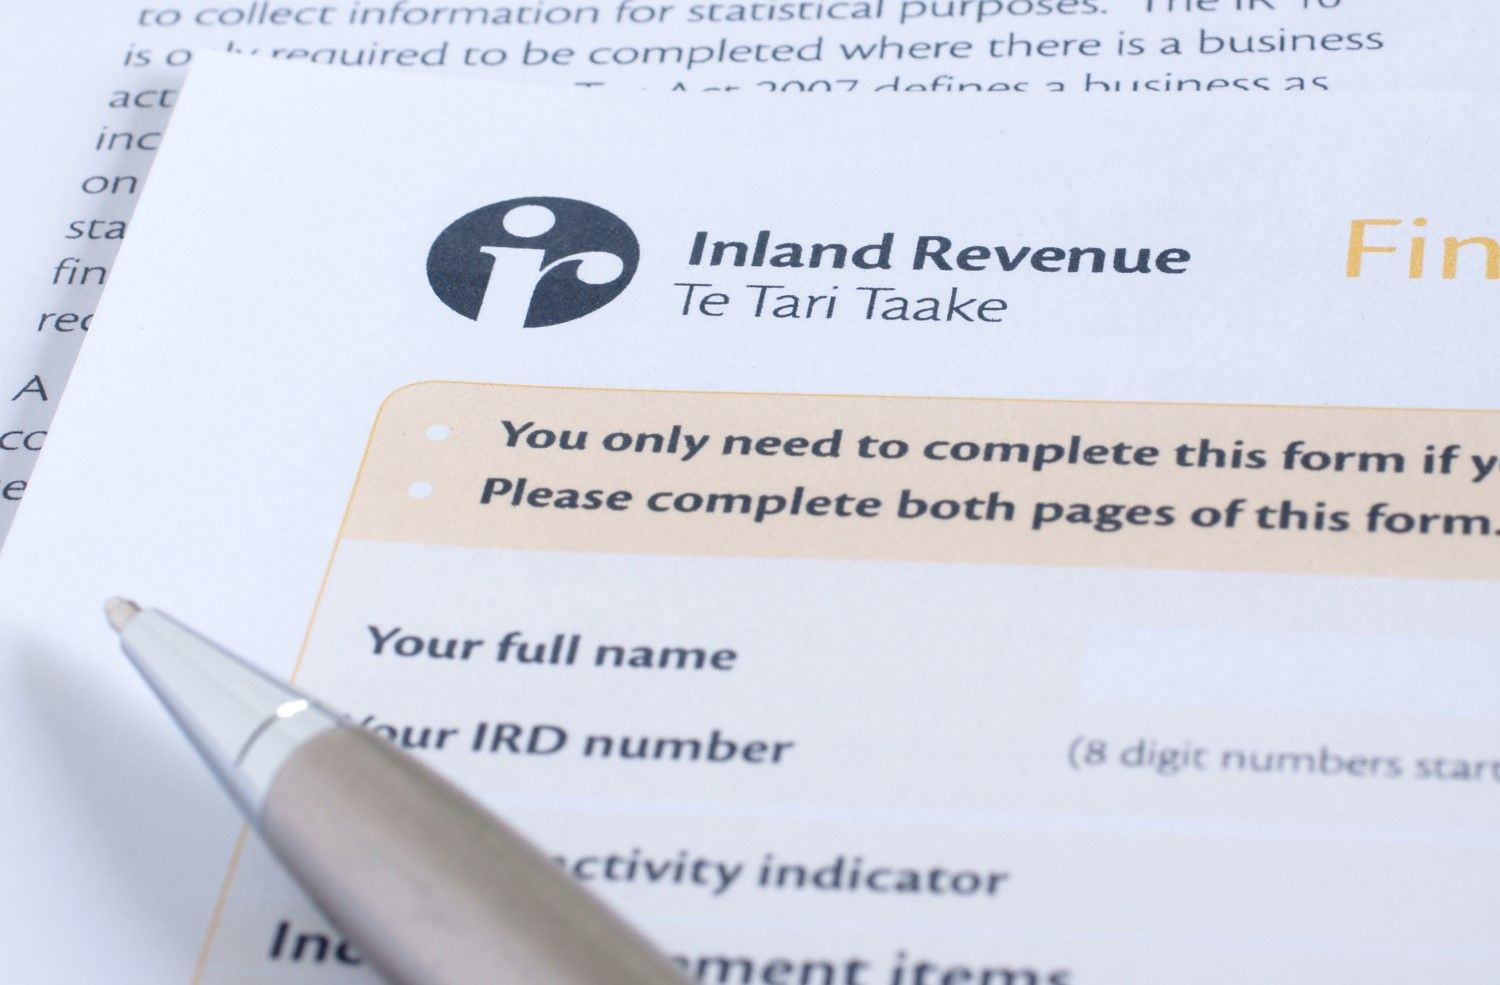 How Long Does It Take To Get An Ird Number In Nz